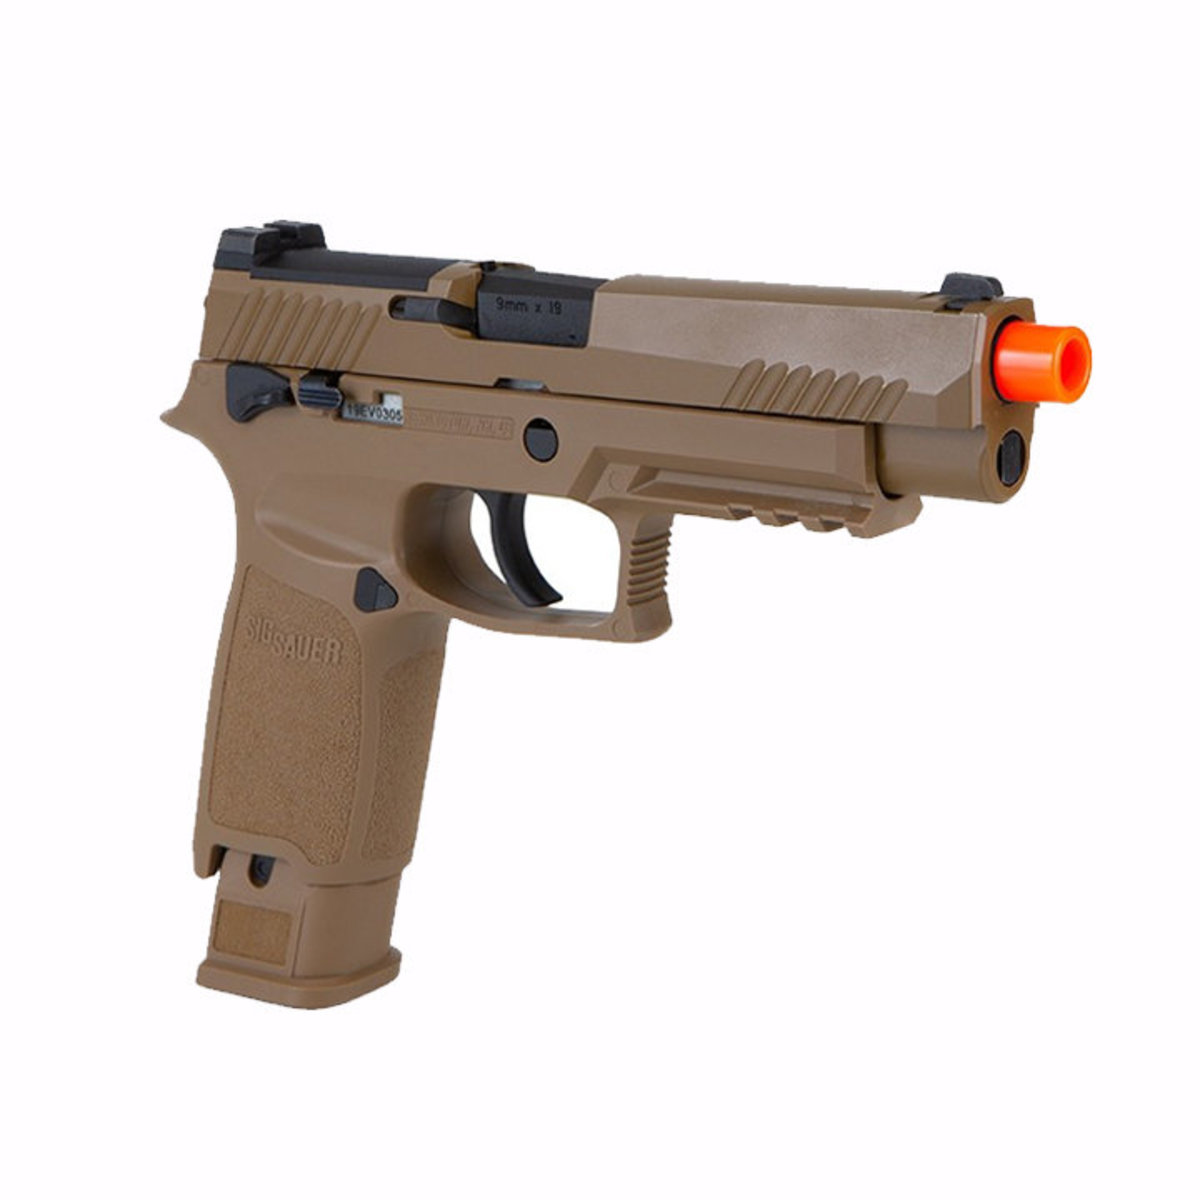 View larger image of Sig Sauer ProForce P320 M17 CO2 Blowback Airsoft Pistol